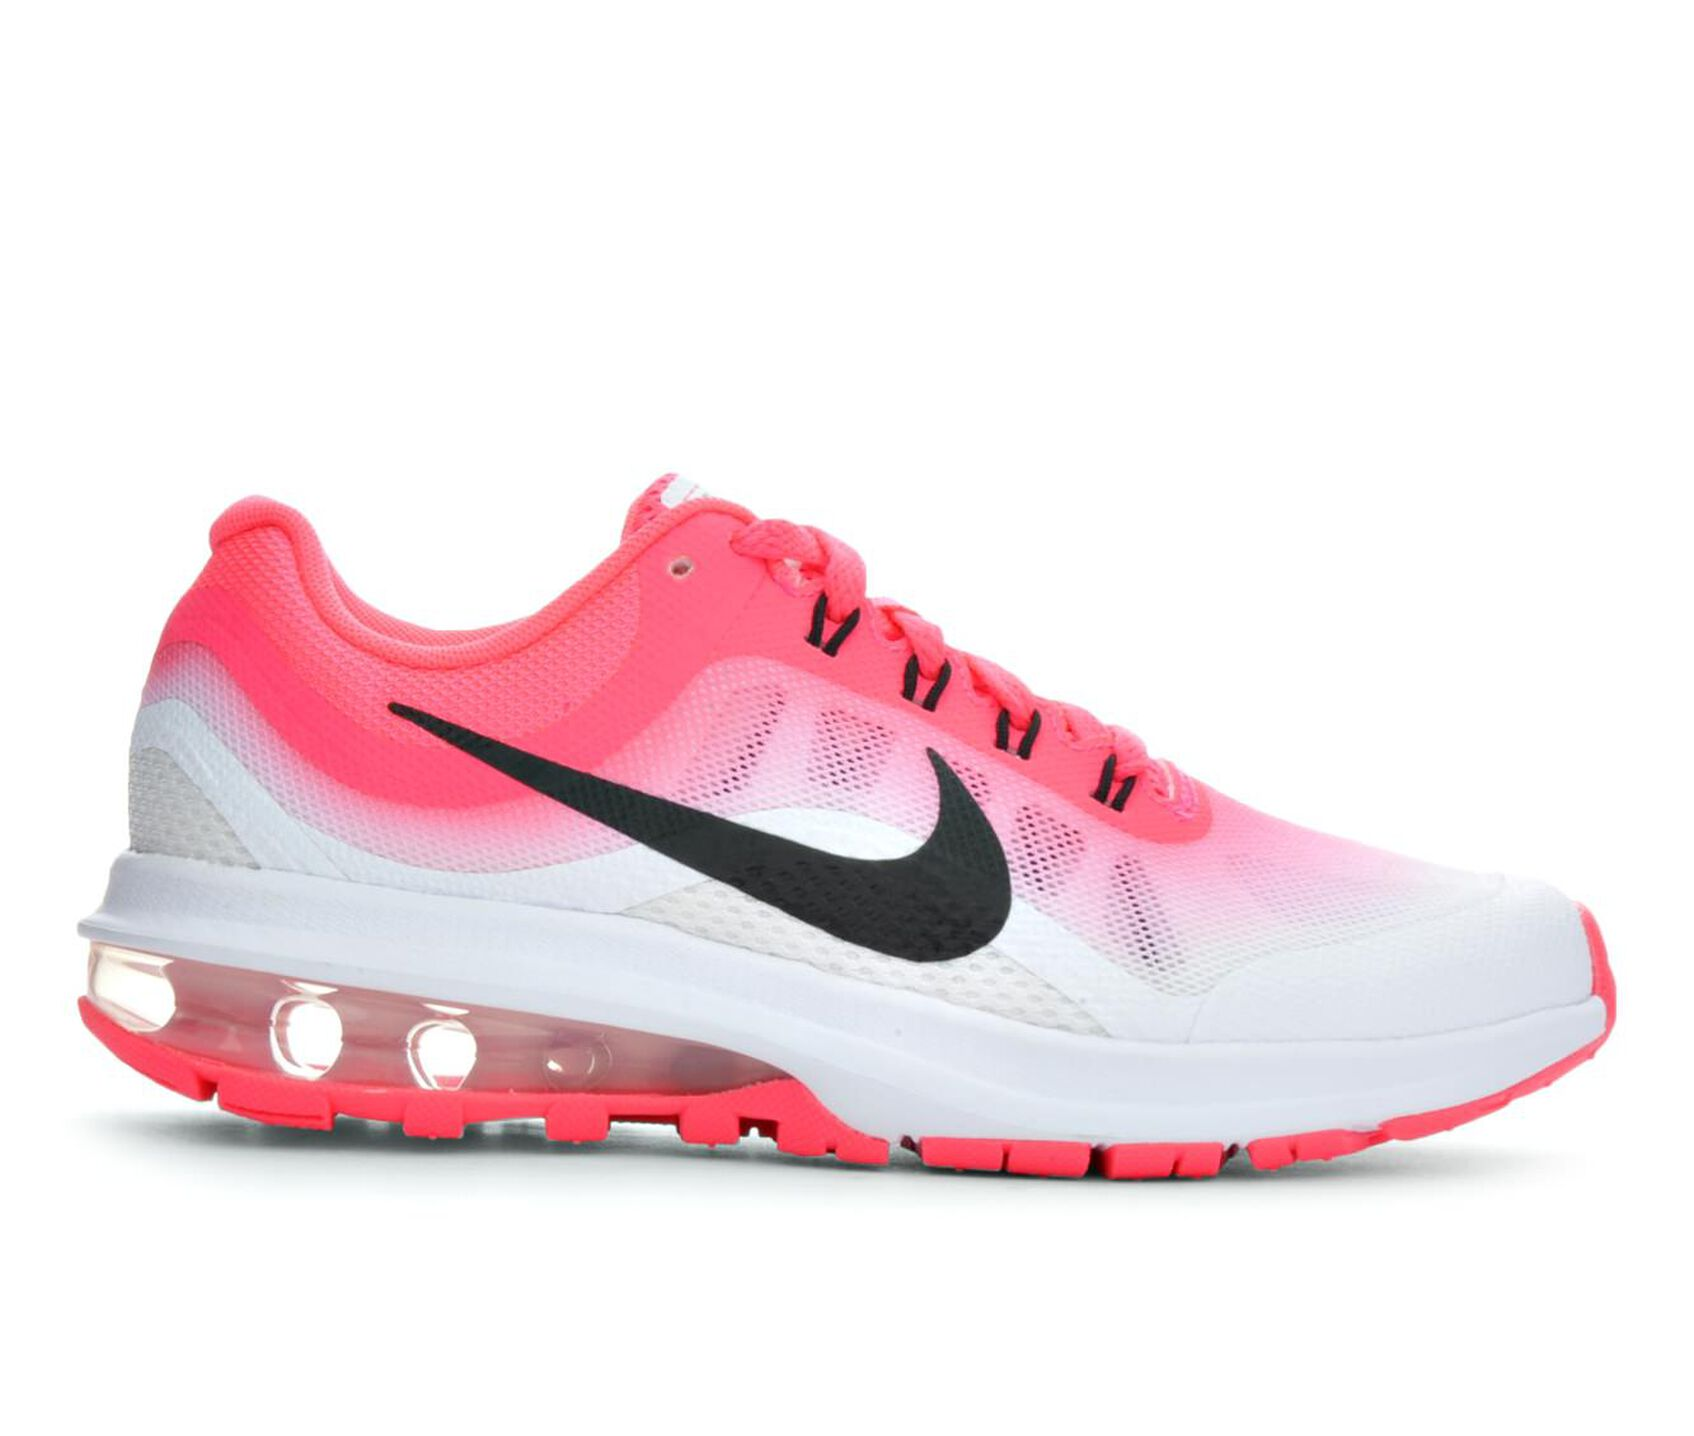 b6bed723c7 Images. Girls' Nike Air Max Dynasty 2 3.5-7 Running Shoes